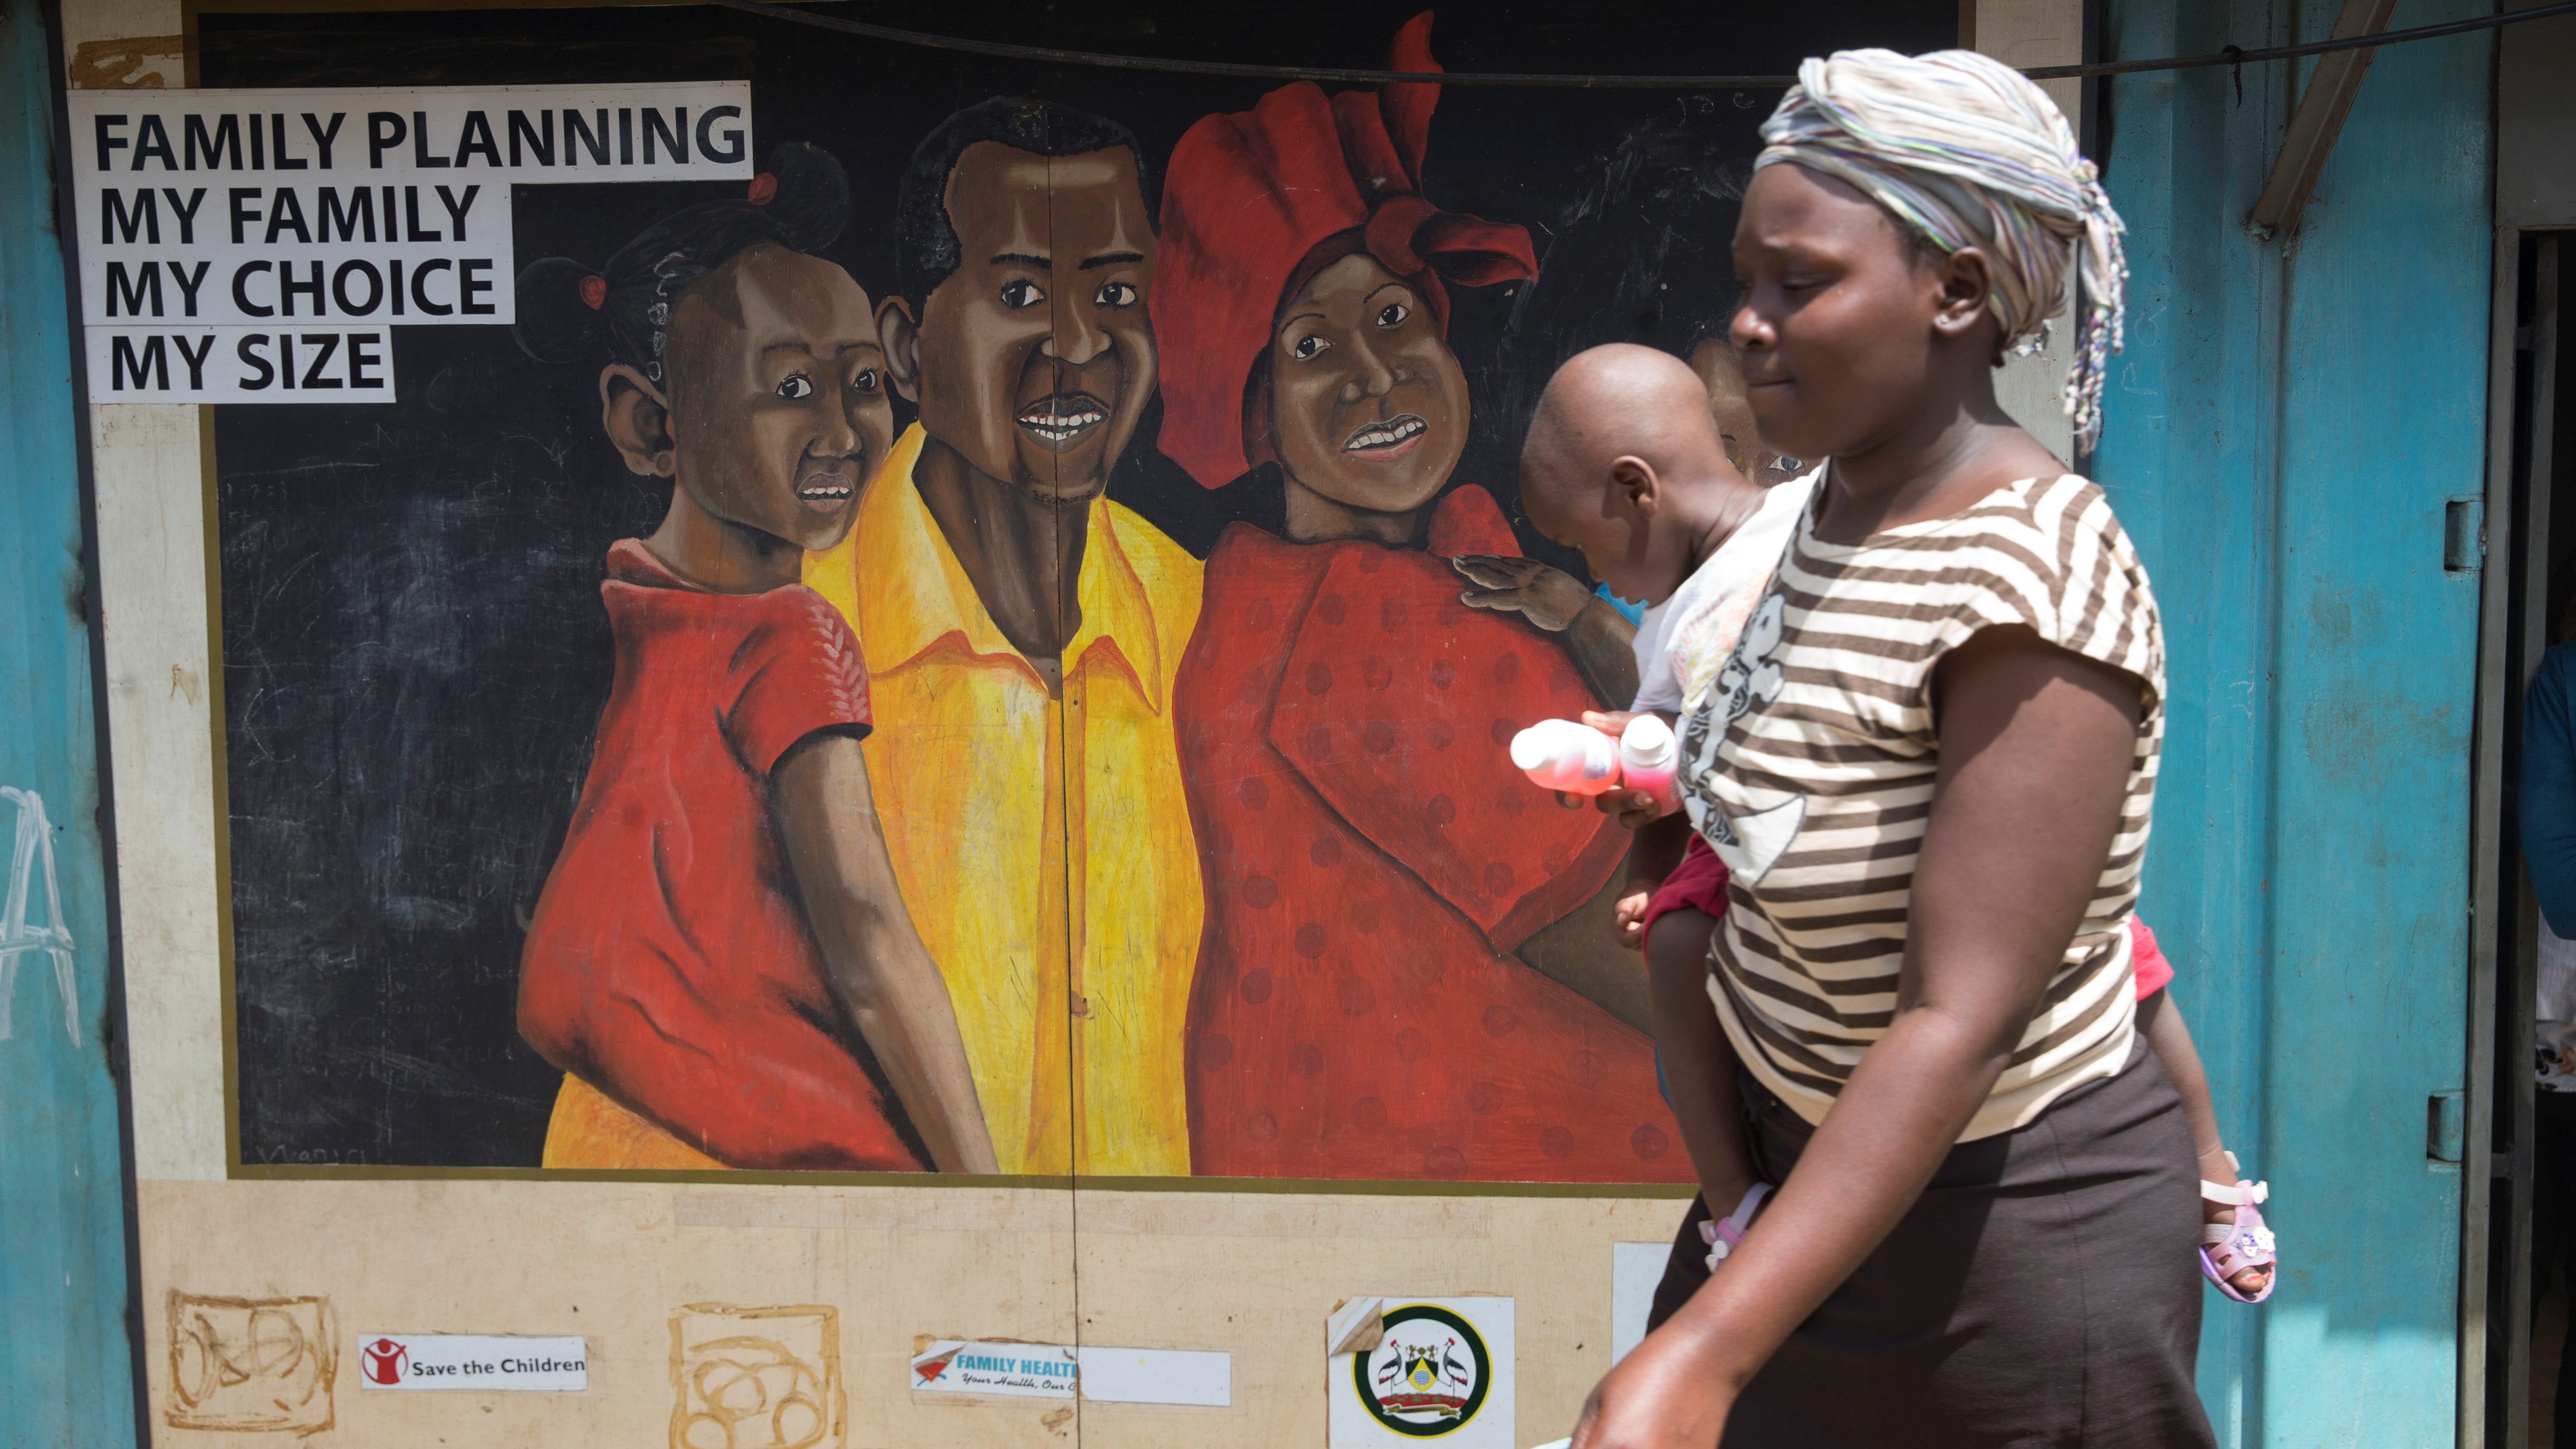 A woman carrying a baby walks past a mural showing a man, woman and child.